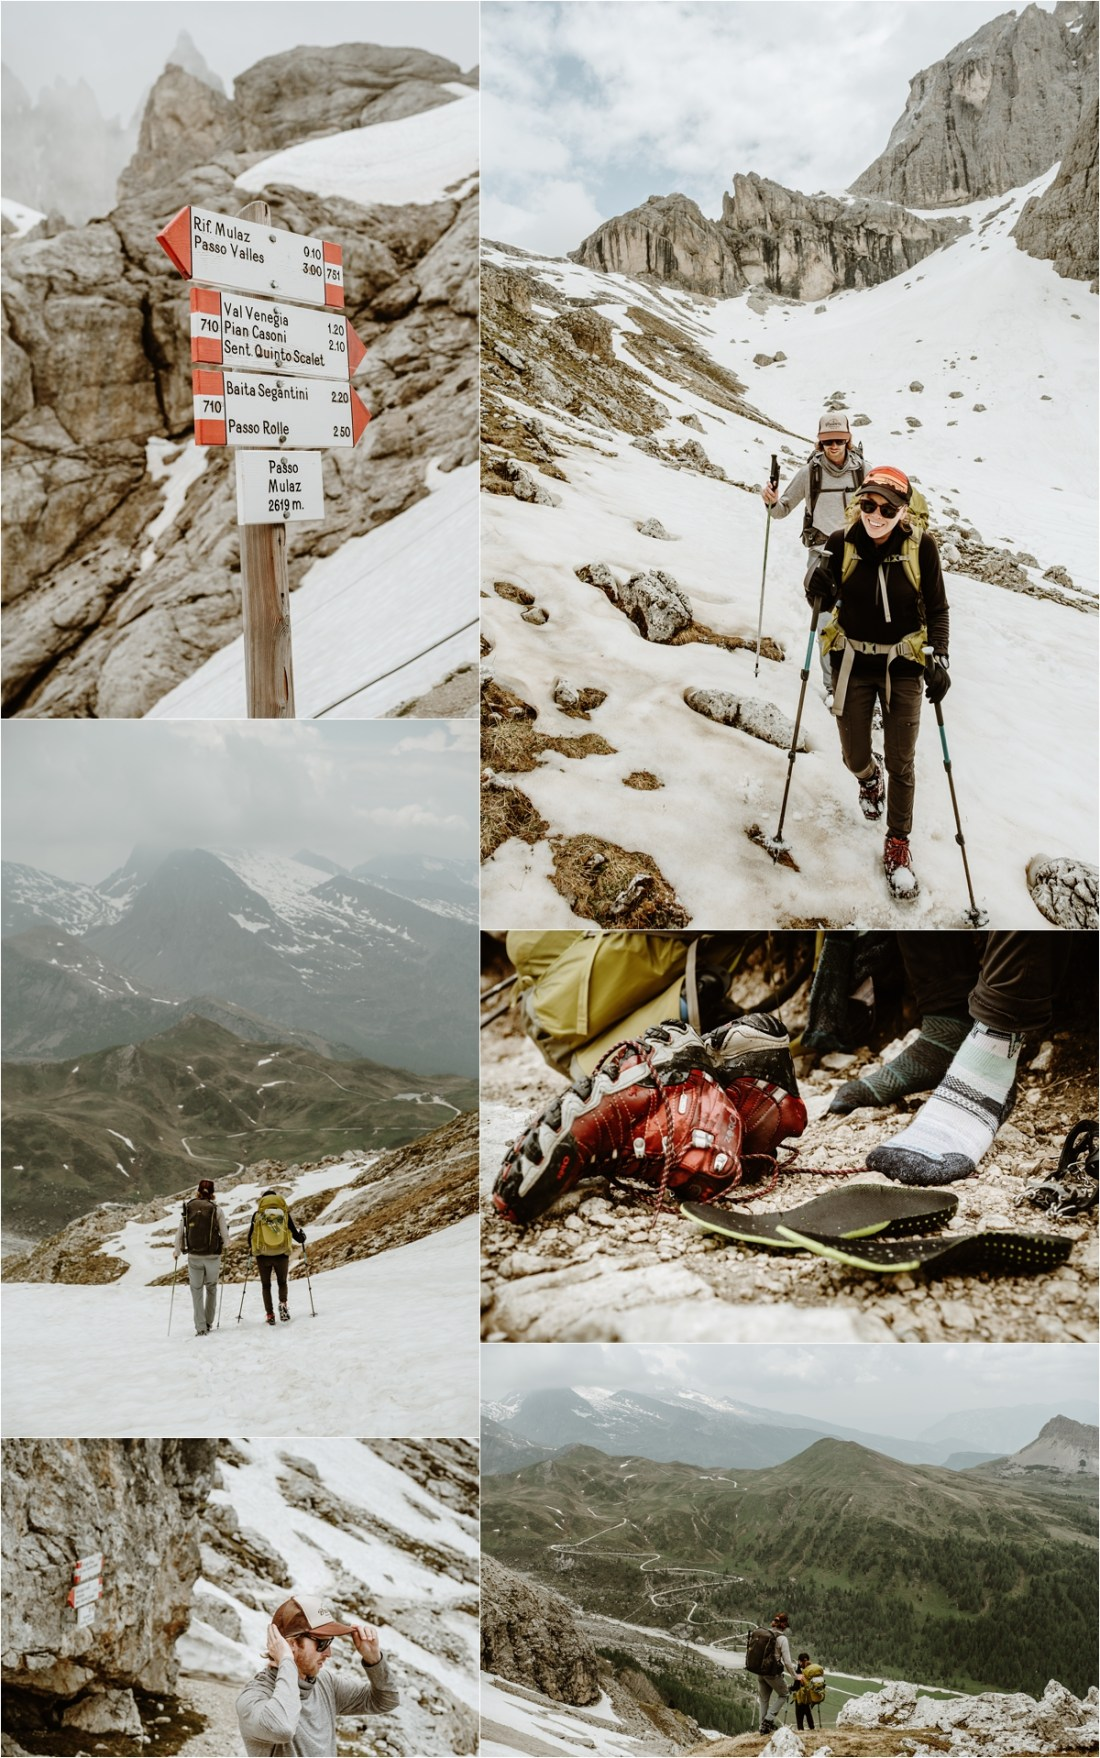 Hiking down in the snow from Rifugio Mulaz to Passo Rolle. Photography by Wild Connections Photography